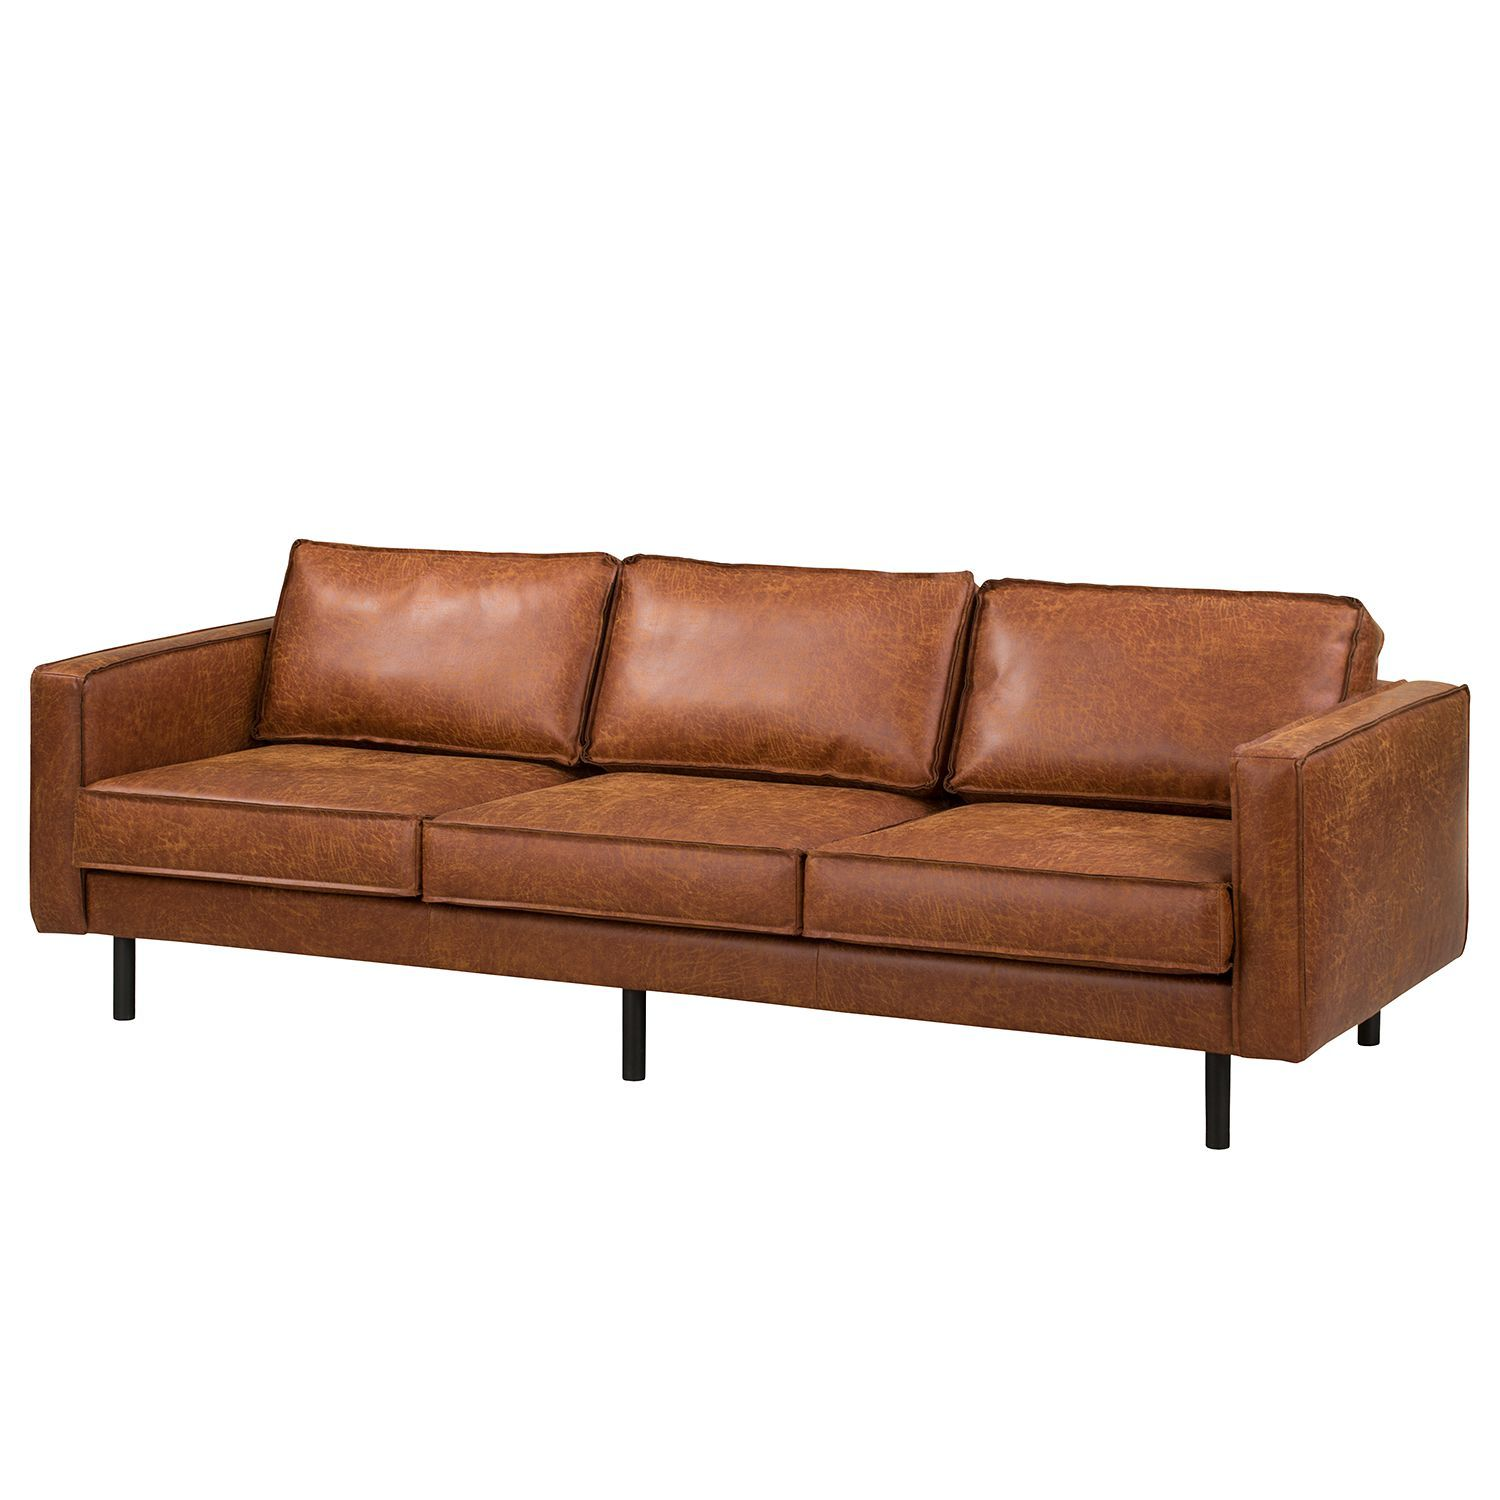 Kleine Sofas Kaufen Bigsofa Fort Dodge Antiklederlook | Sofa Fort, Home24, Kleine Couch